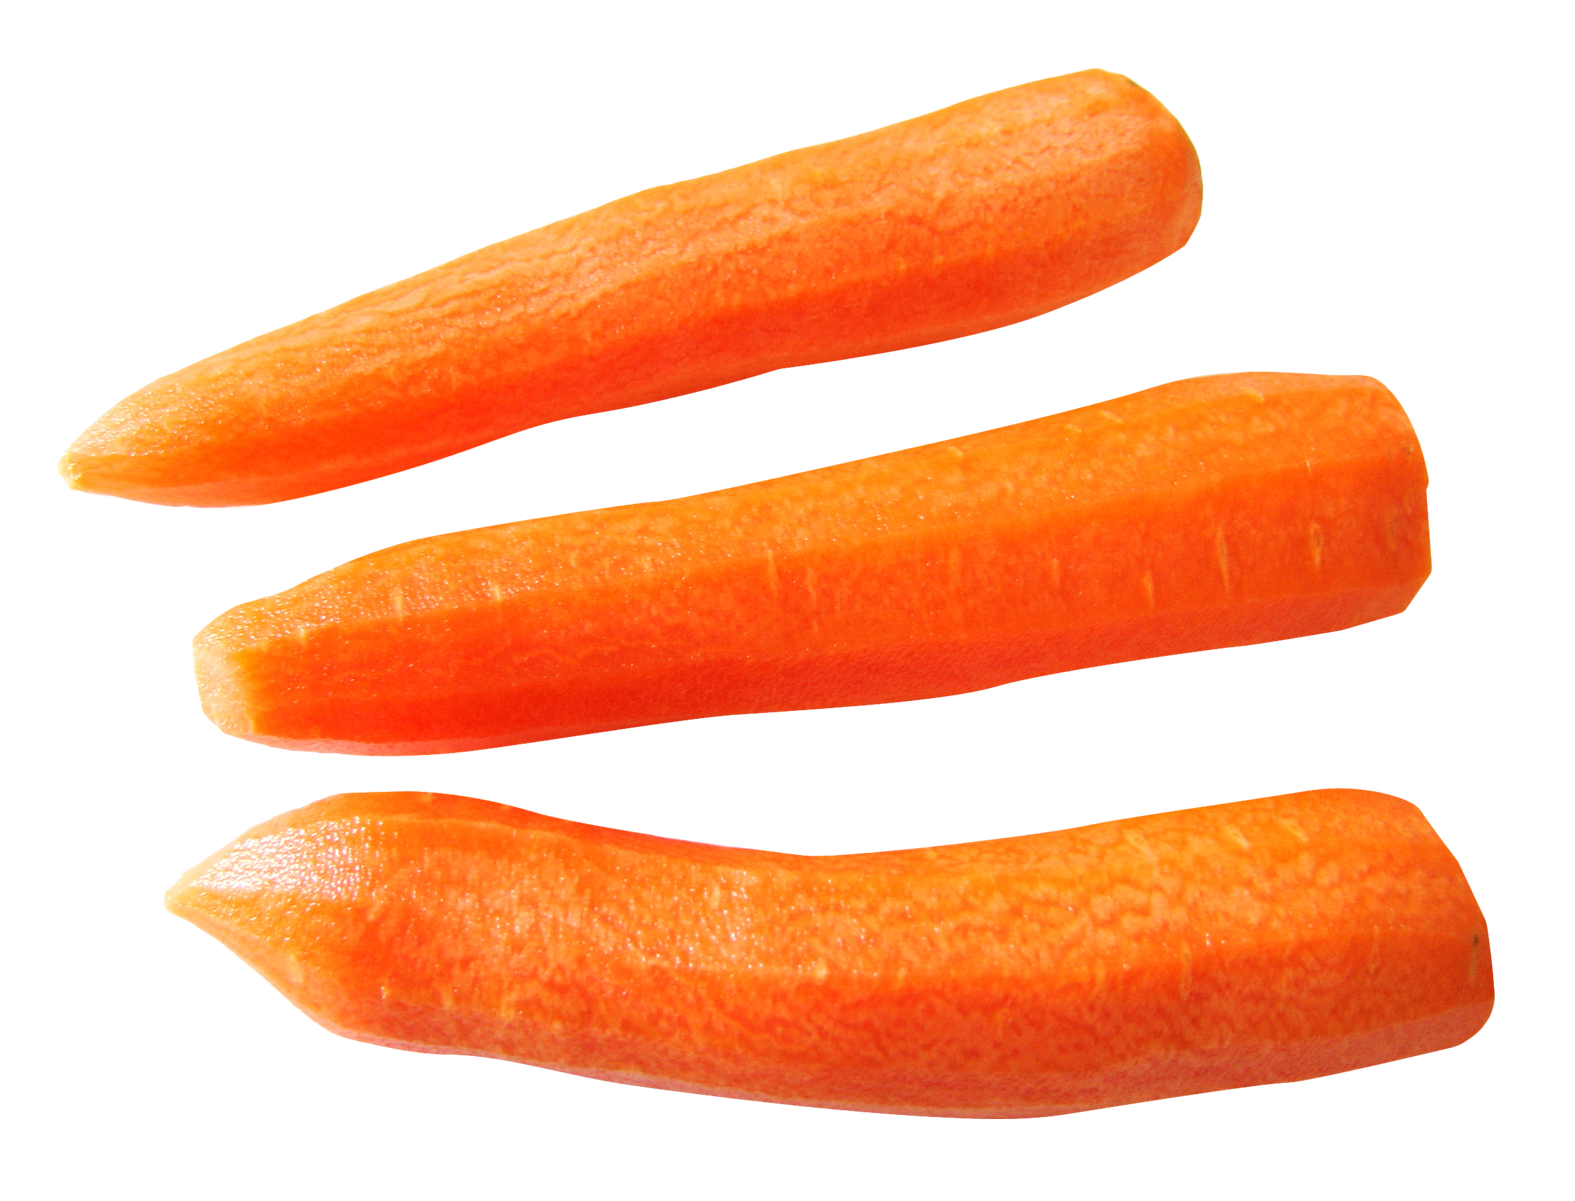 Carrot Sliced PNG Image